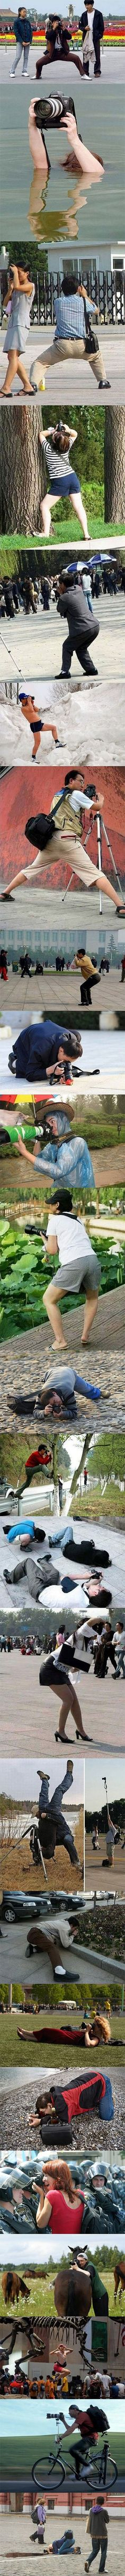 What people will do for a good photo... do what you gotta do....